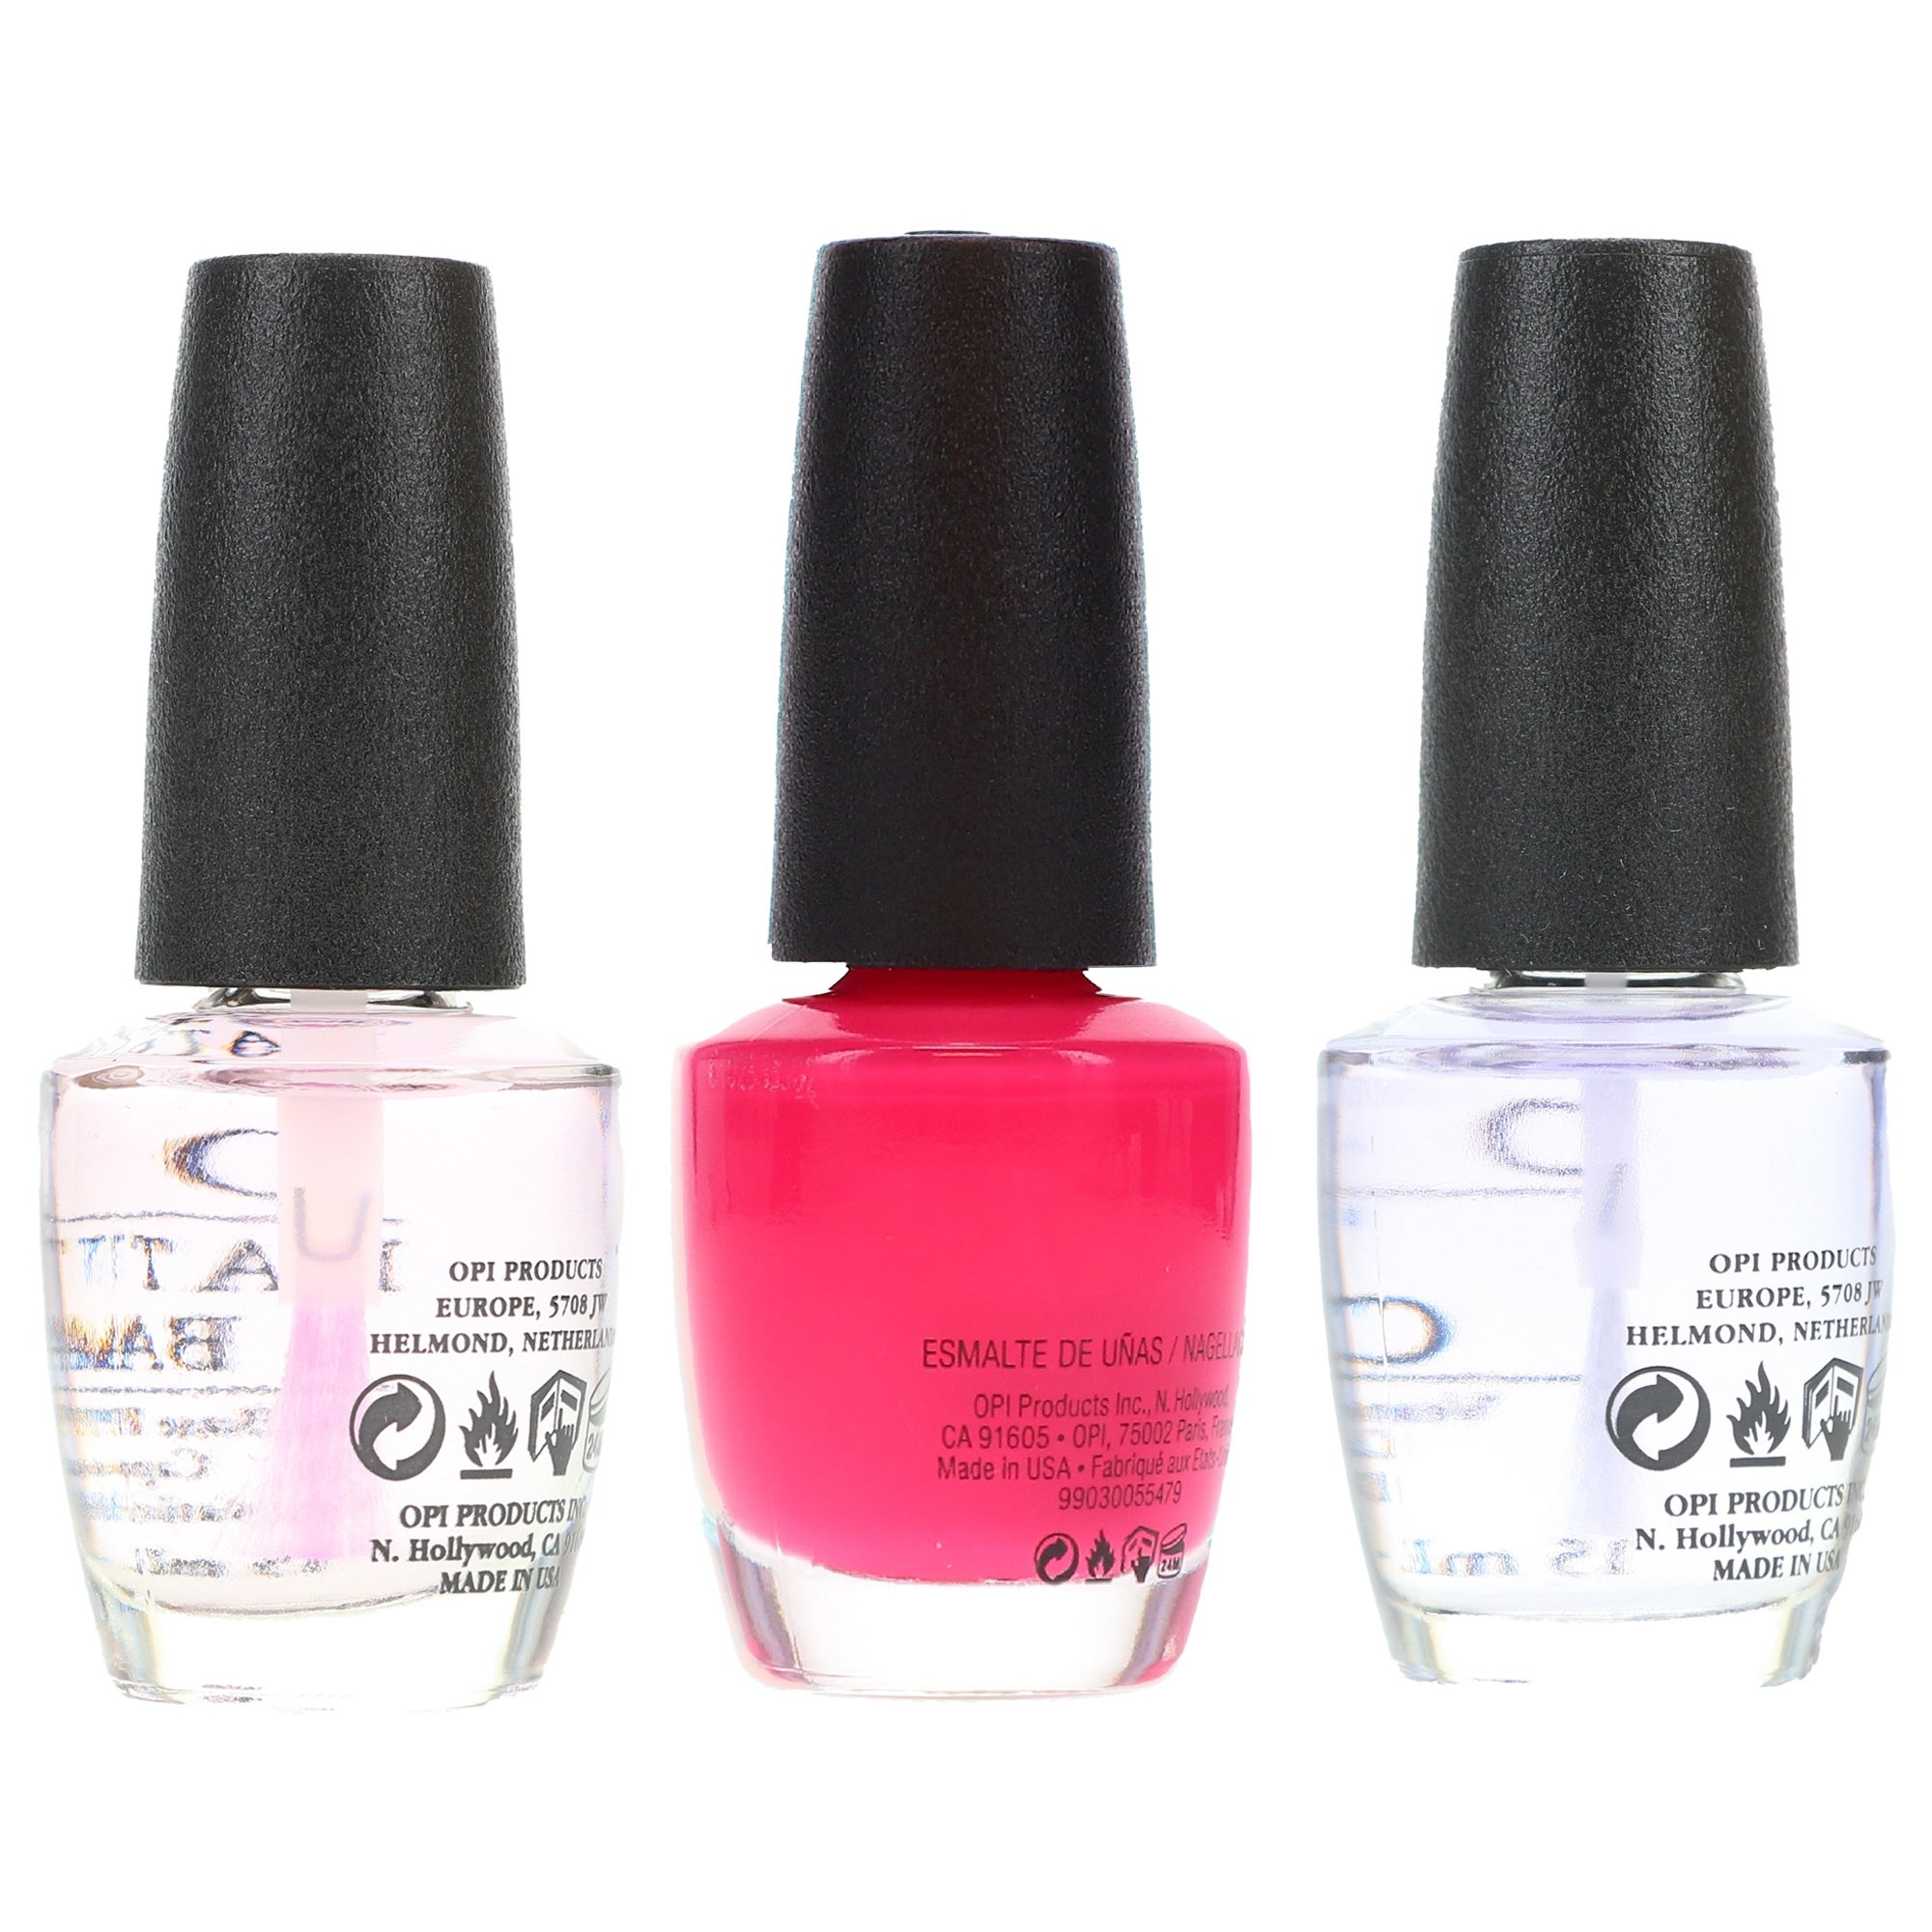 Opi Strawberry Margarita 5 Oz Top Coat 5 Oz Natural Nail Base Coat 5 Oz Combo Pack Overstock 31796491